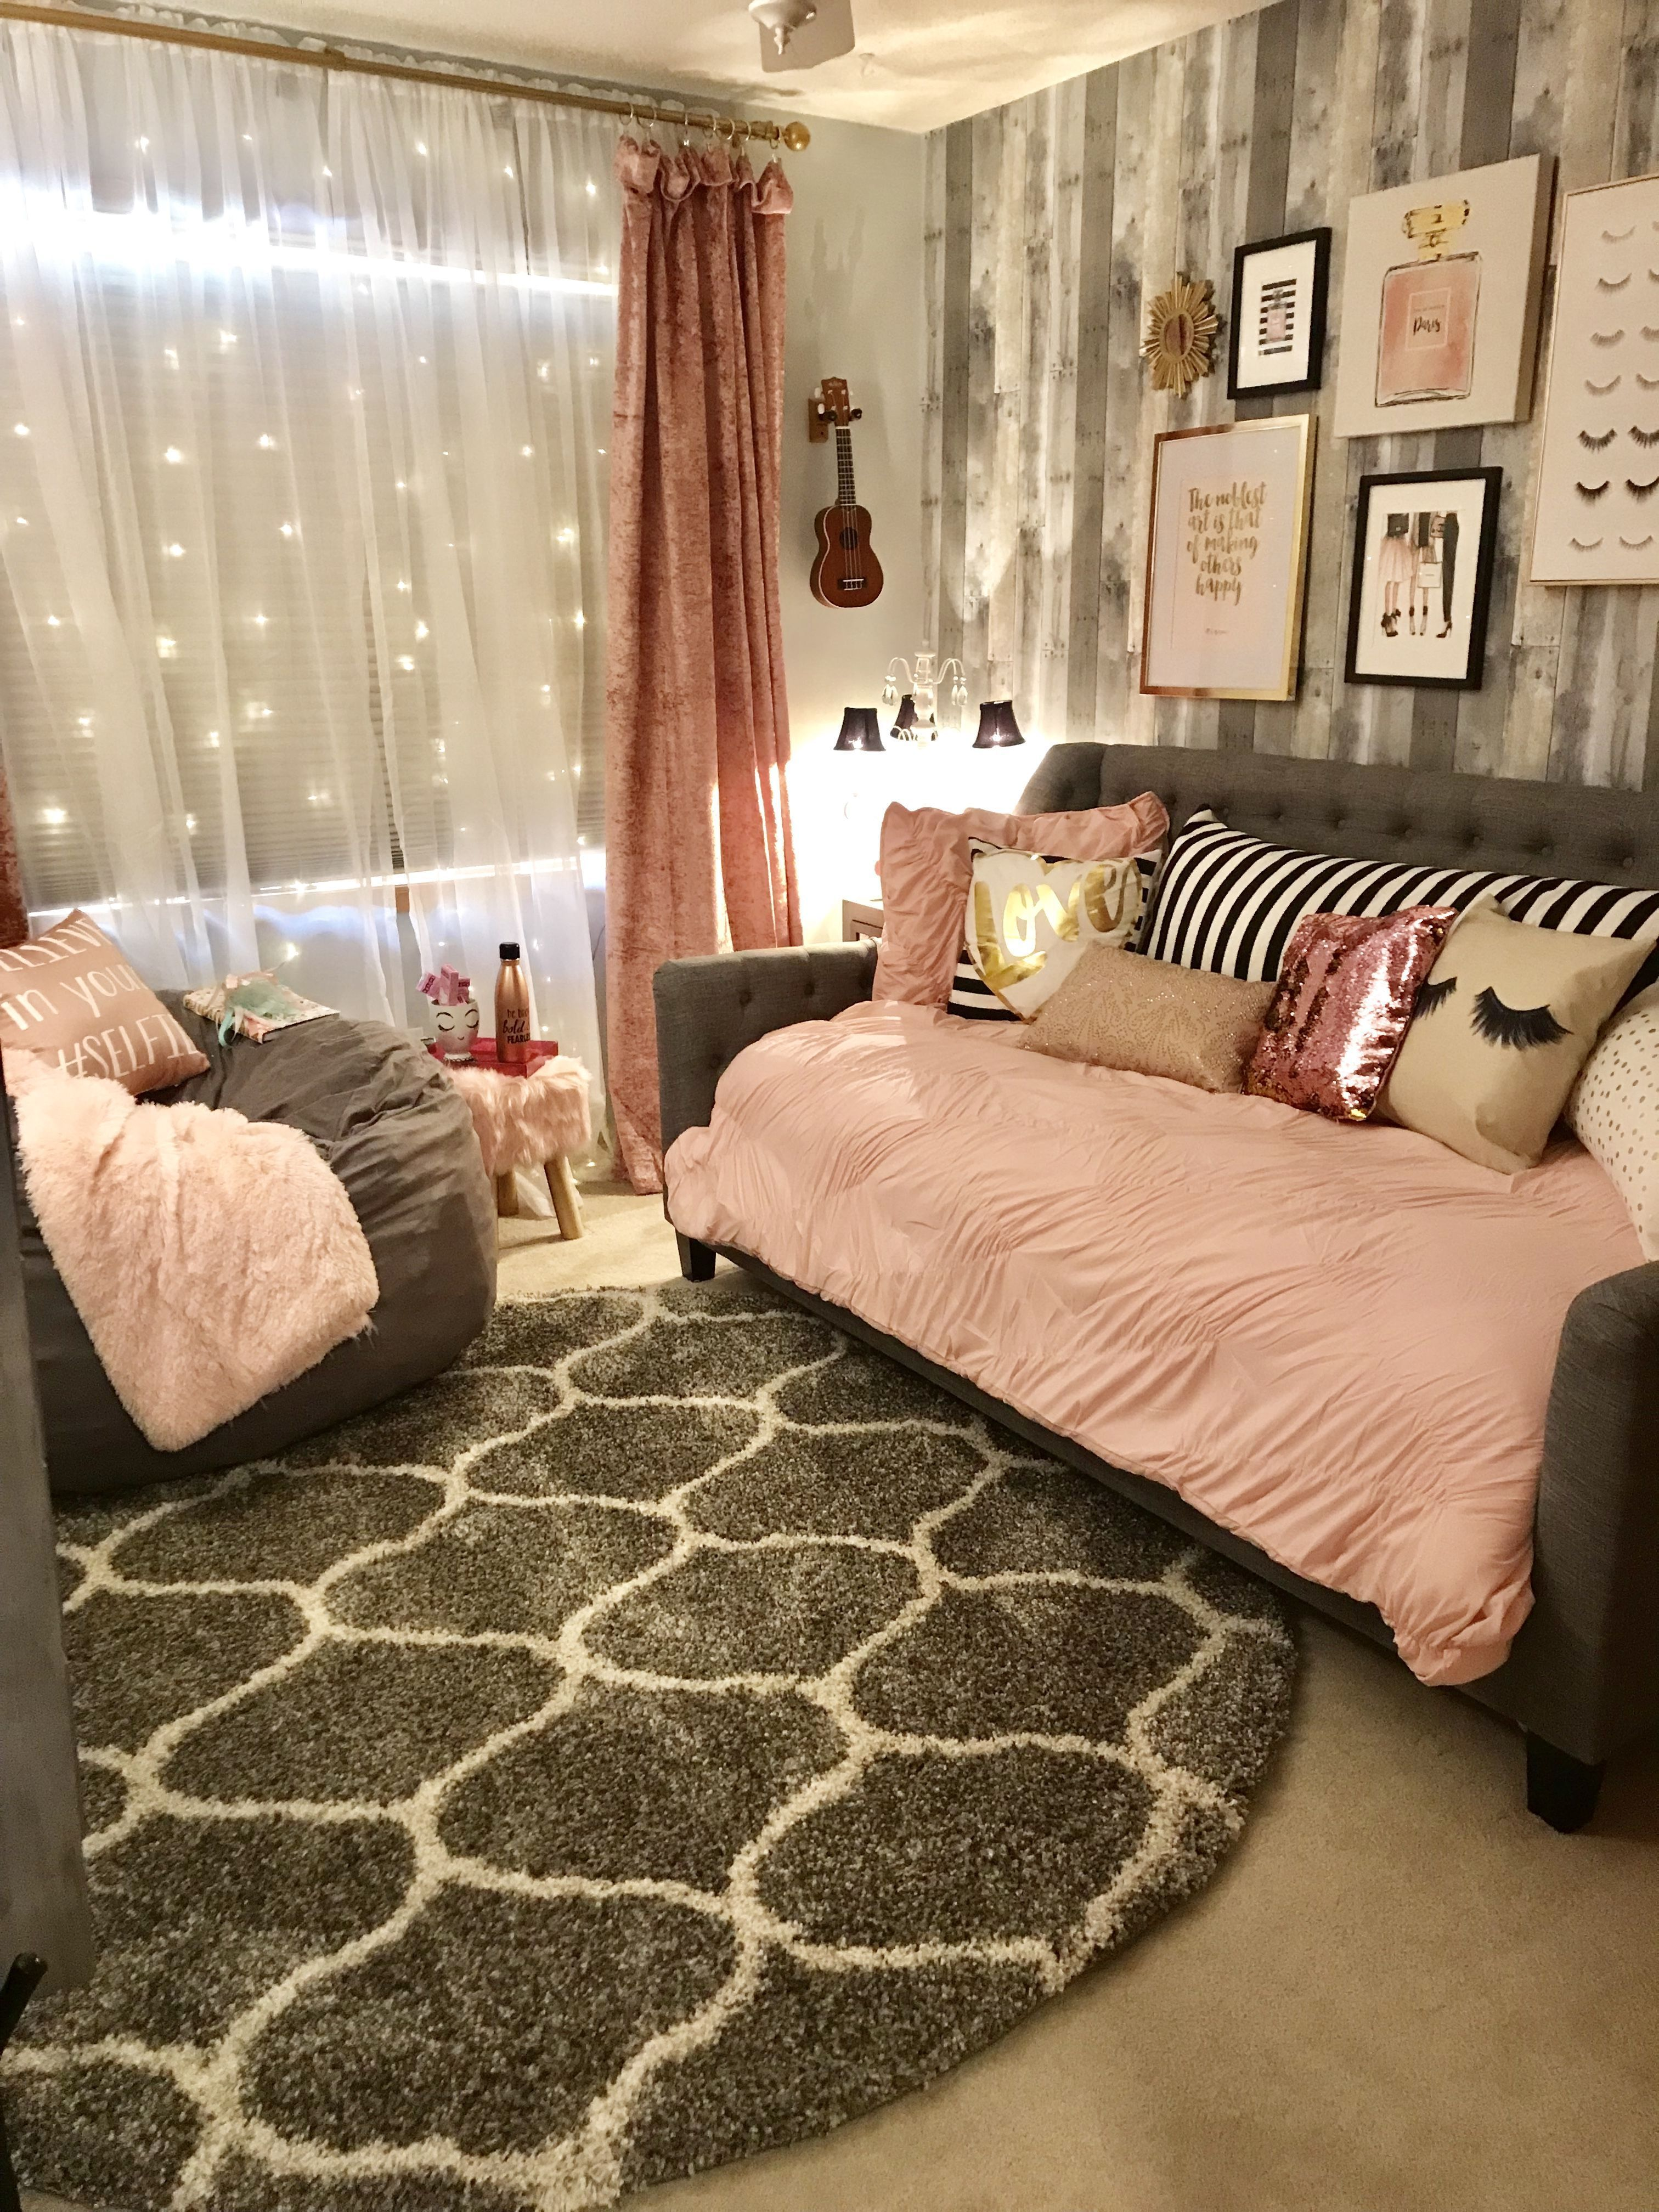 65 Feminine And Fashionable Teenage Girl Bedroom Ideas That Will Blow Your Mind Small Room Bedroom Girl Bedroom Decor Tween Girl Bedroom